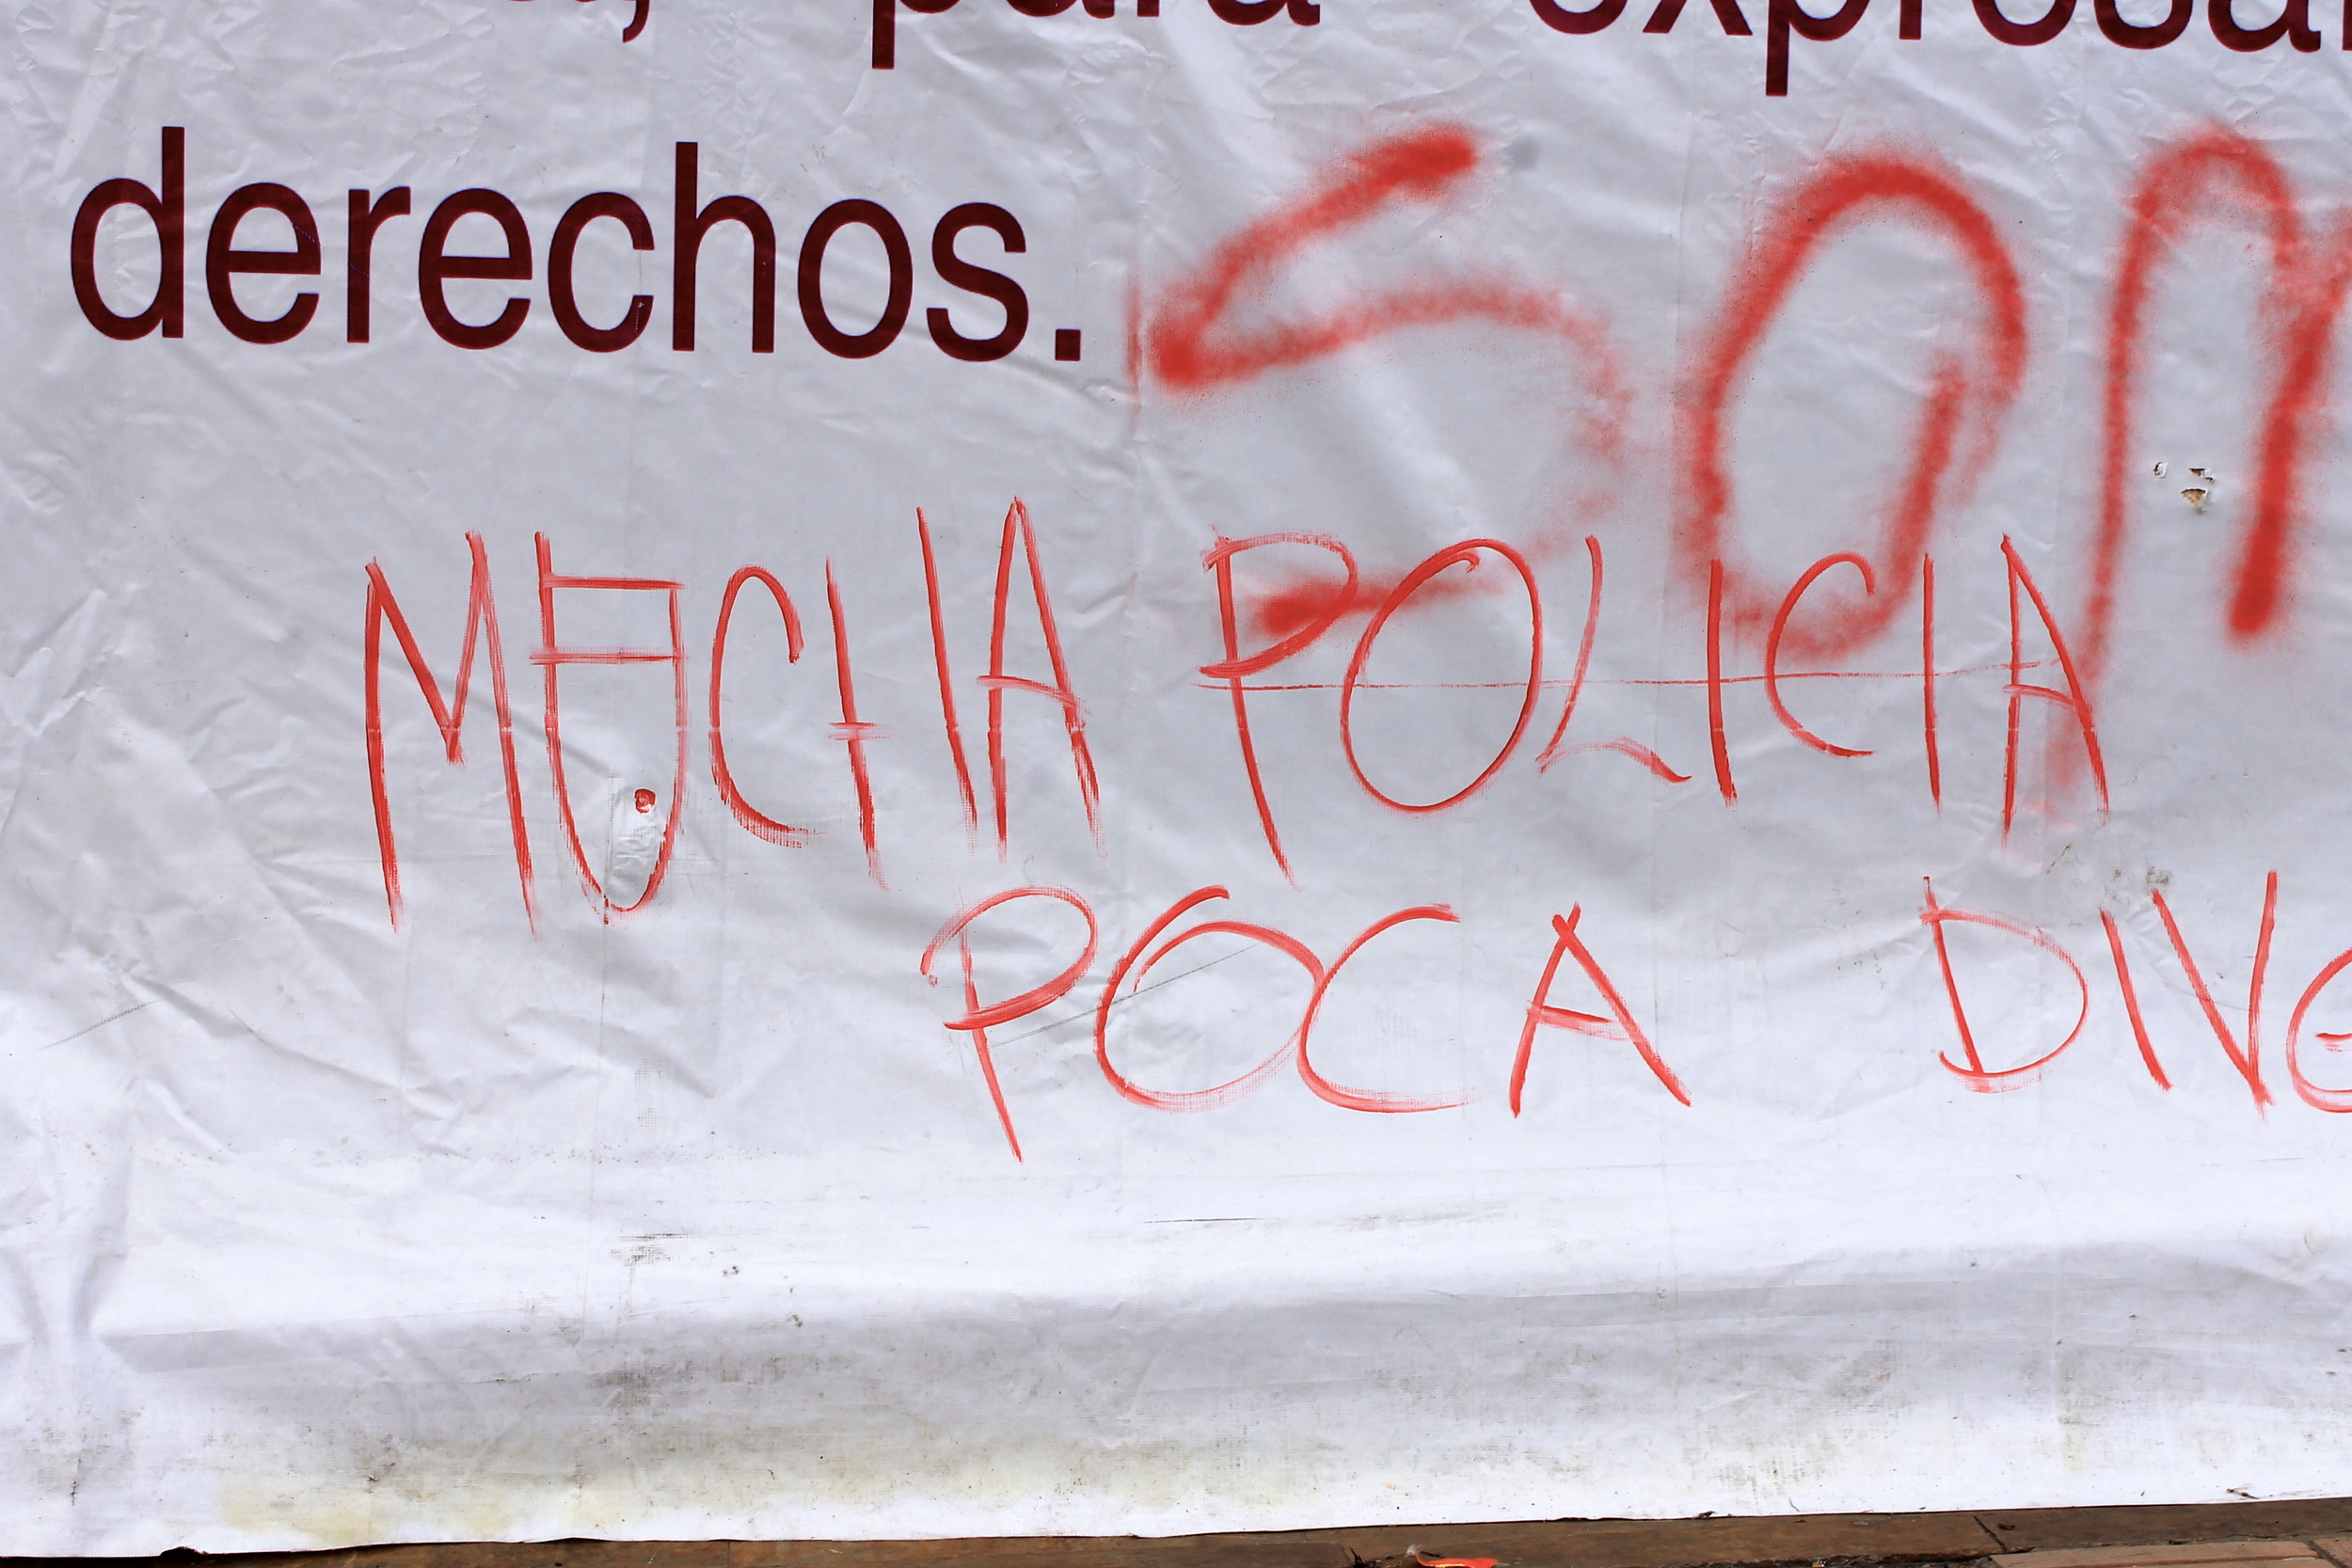 """Another Santa Fe, but part of a """"M u cha Policia, Poca Diversión"""" (""""Lots of Police, Little Fun"""") tag which, in itself, was a light diversion from the more angry messages."""